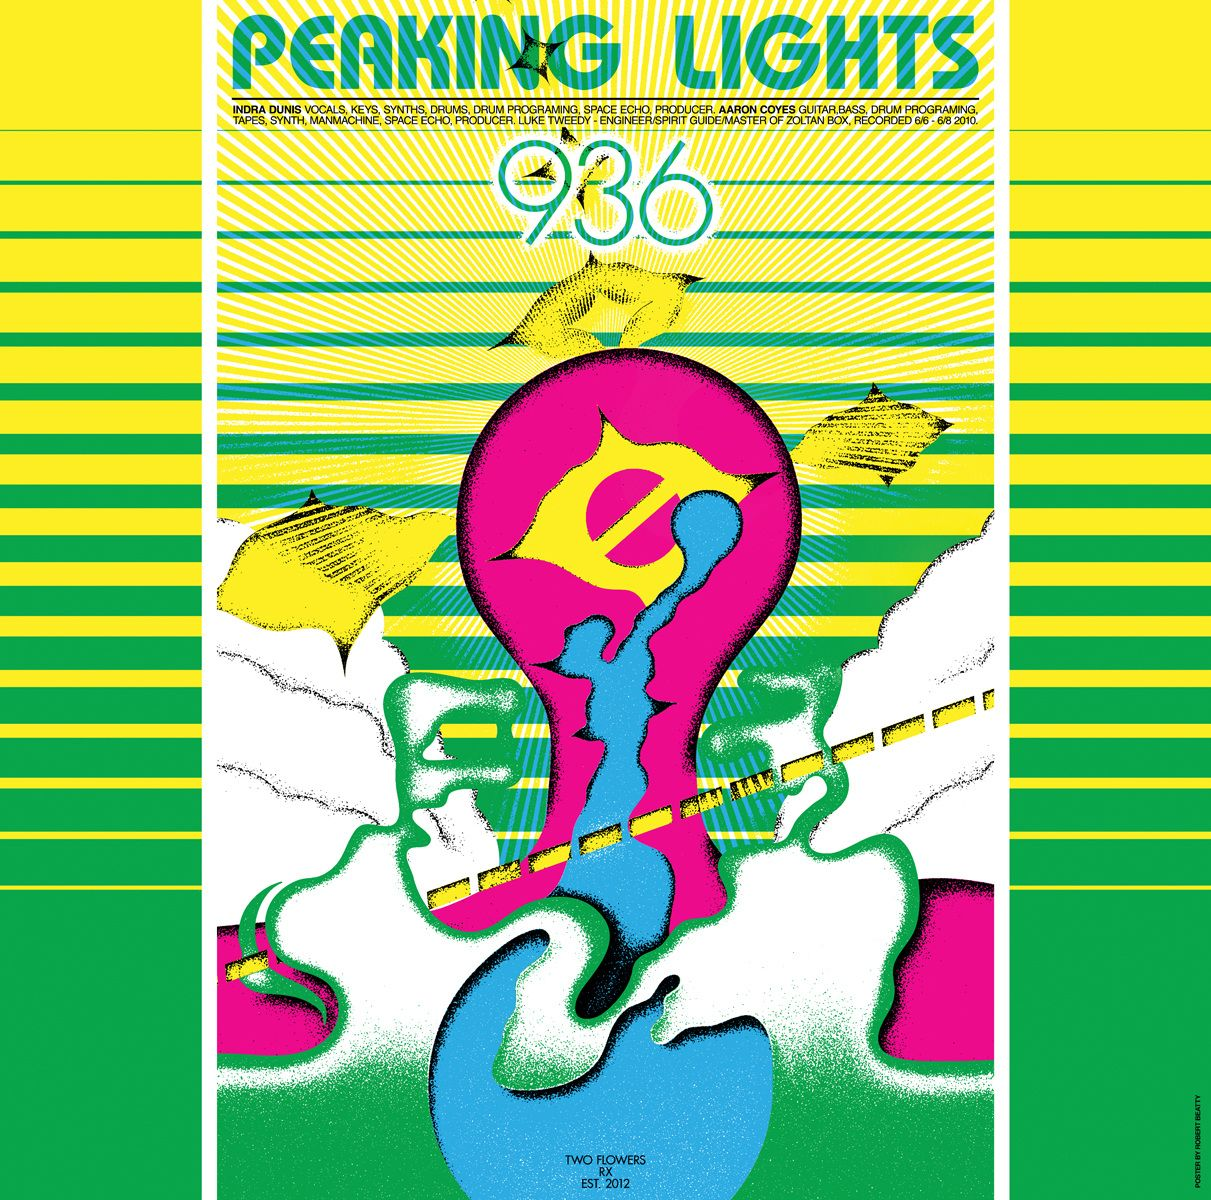 1583351295636_peaking-lights-936-poster_1211.jpg